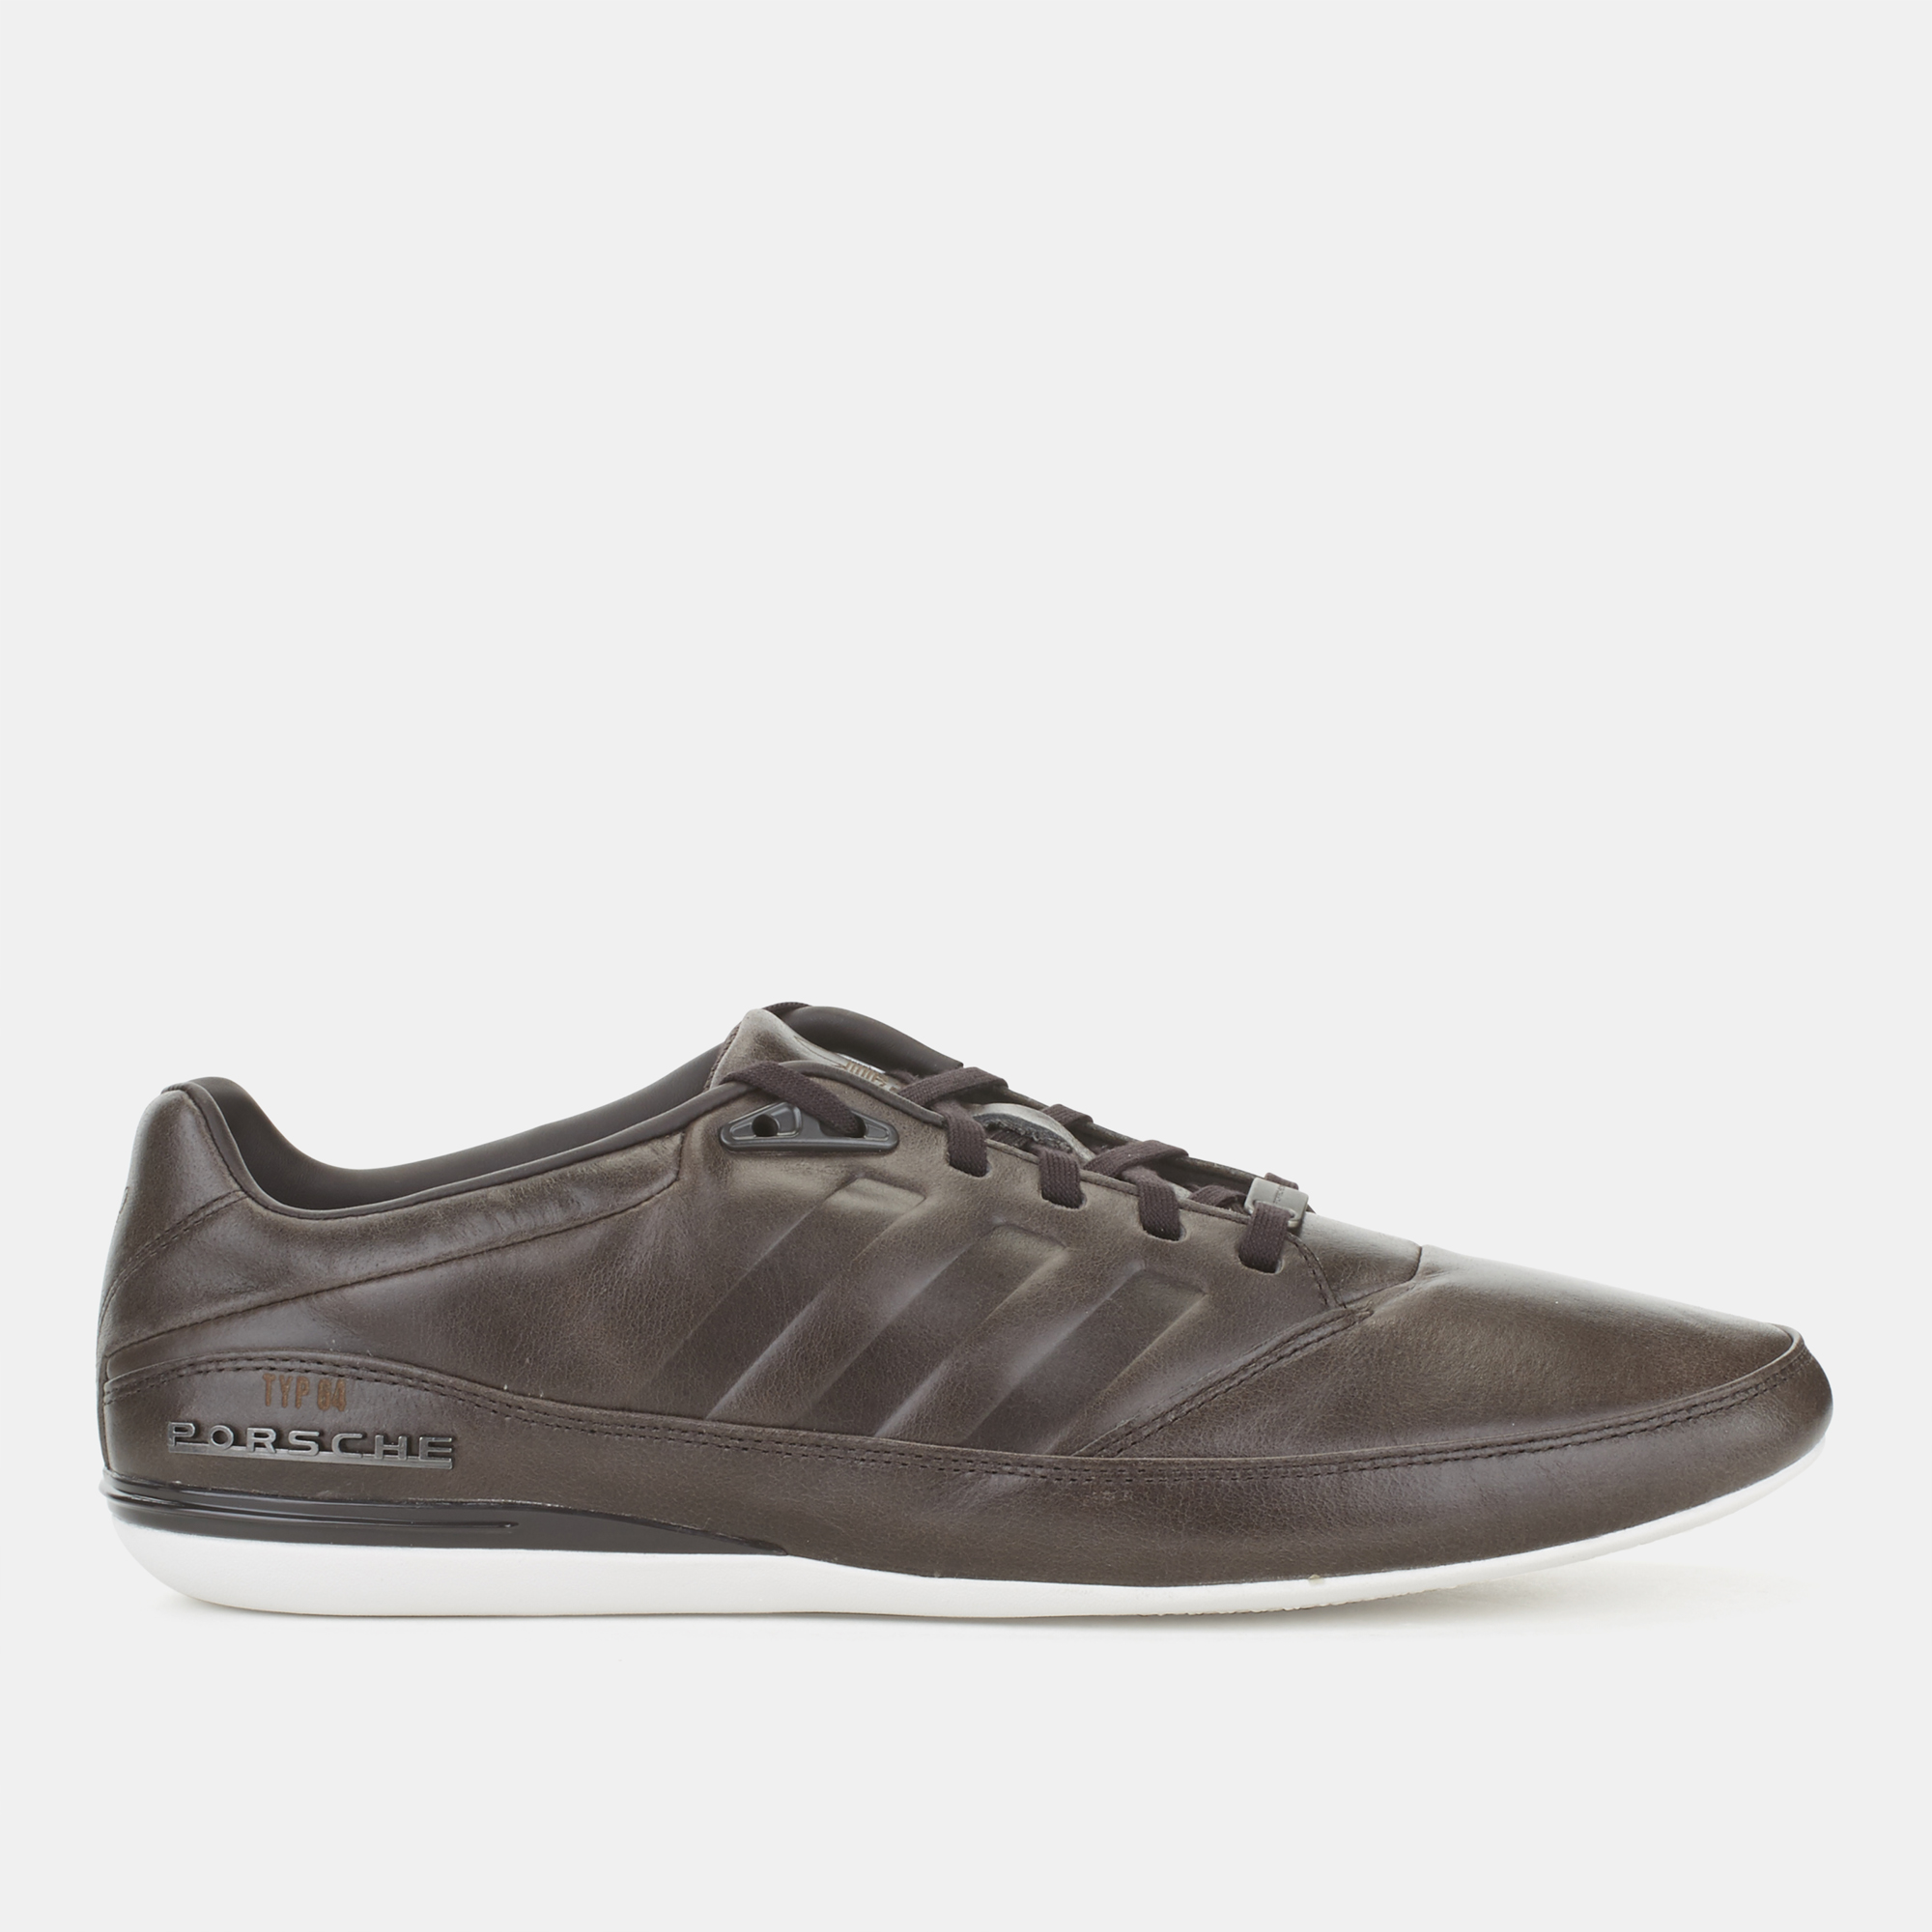 adidas Men's adidas Originals PORSCHE Typ 64 Mid Shoes